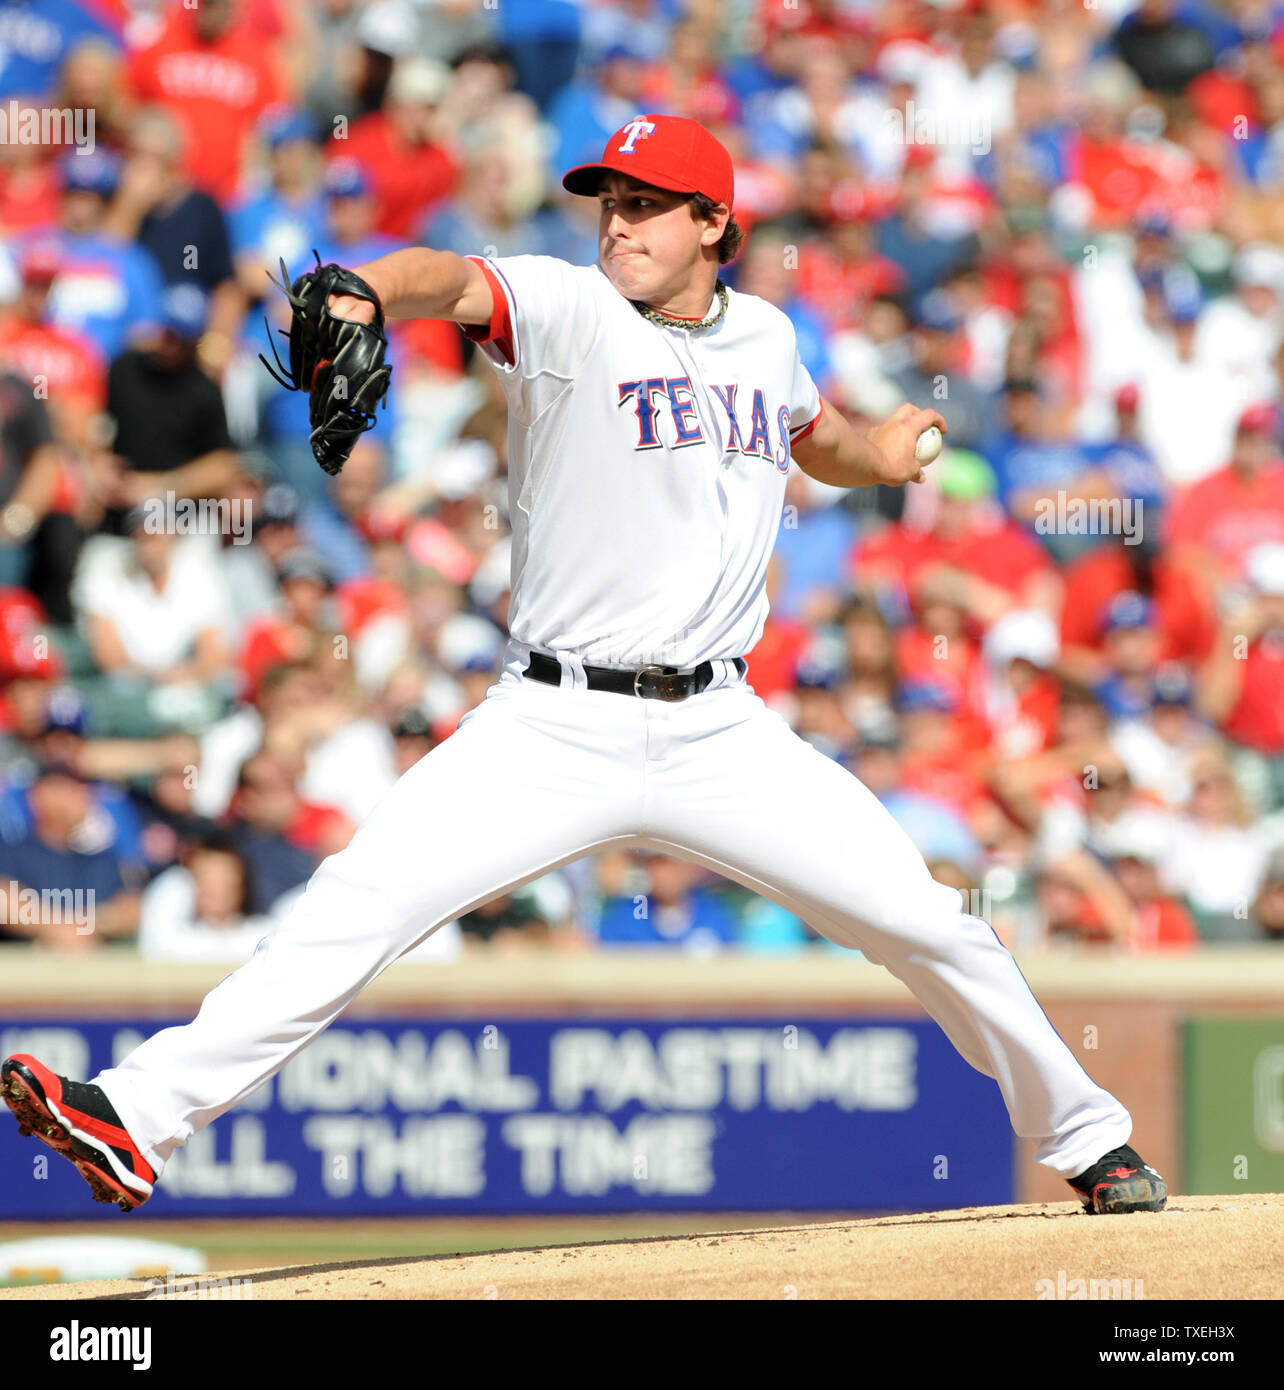 Texas Rangers starting pitcher Derek Holland throws against the Detroit Tigers in game two of the ALCS at Rangers Ballpark in Arlington on October 10, 2011 in Arlington, Texas.   The Rangers lead the best of seven series 1-0.   UPI/Ian Halperin Stock Photo